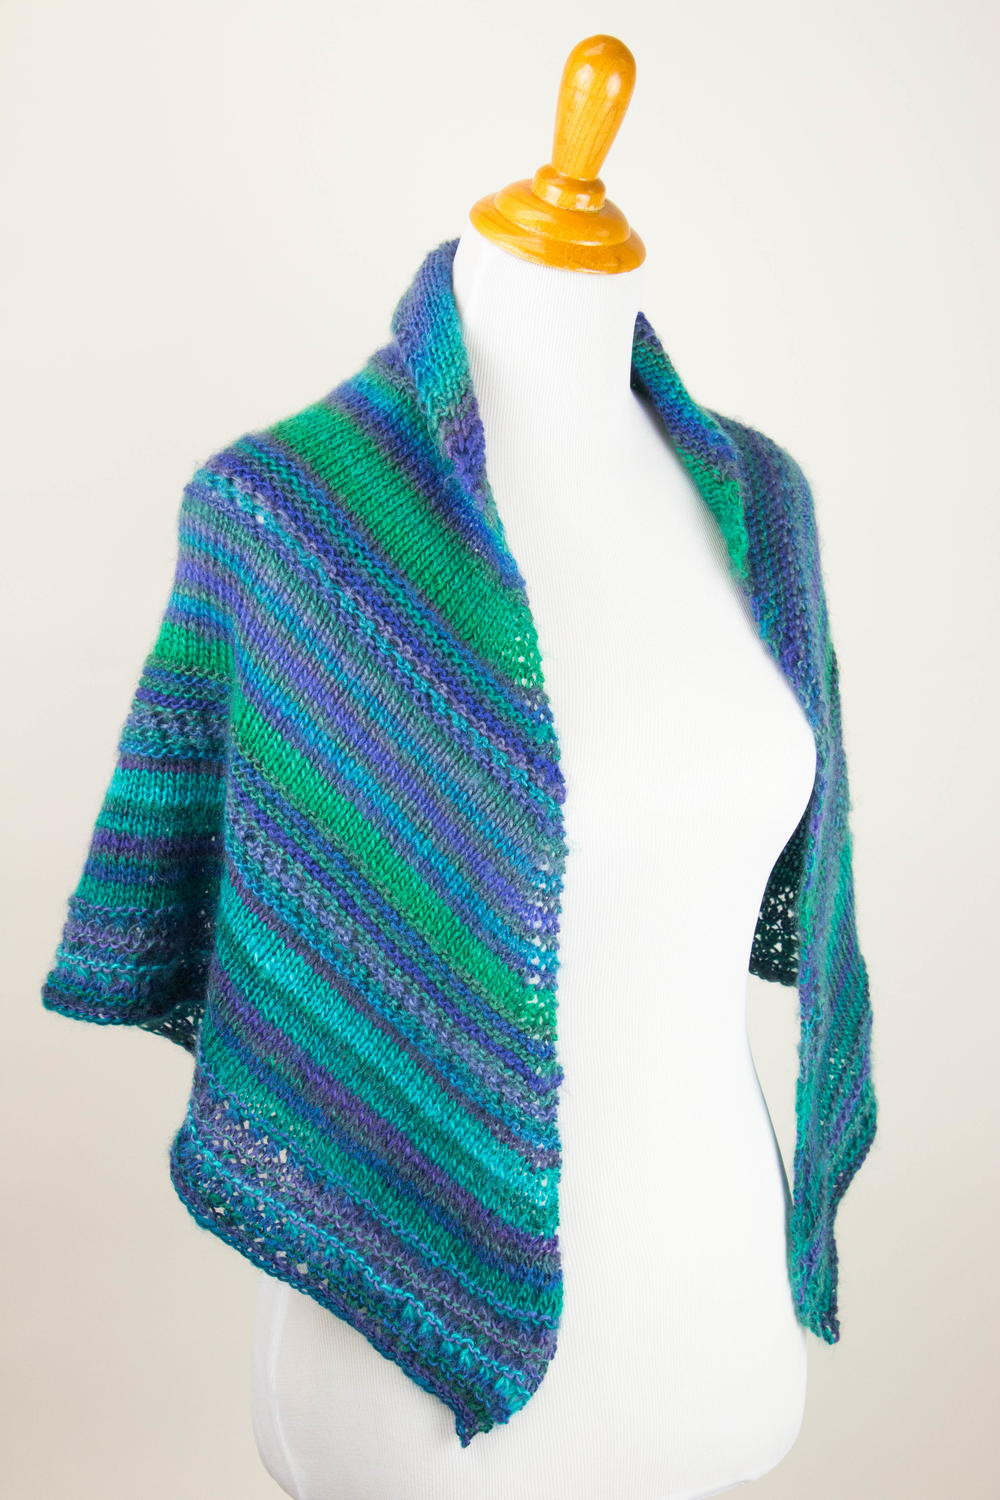 Shawl Patterns Awesome the Wings Of A Prayer Shawl Of Luxury 45 Images Shawl Patterns